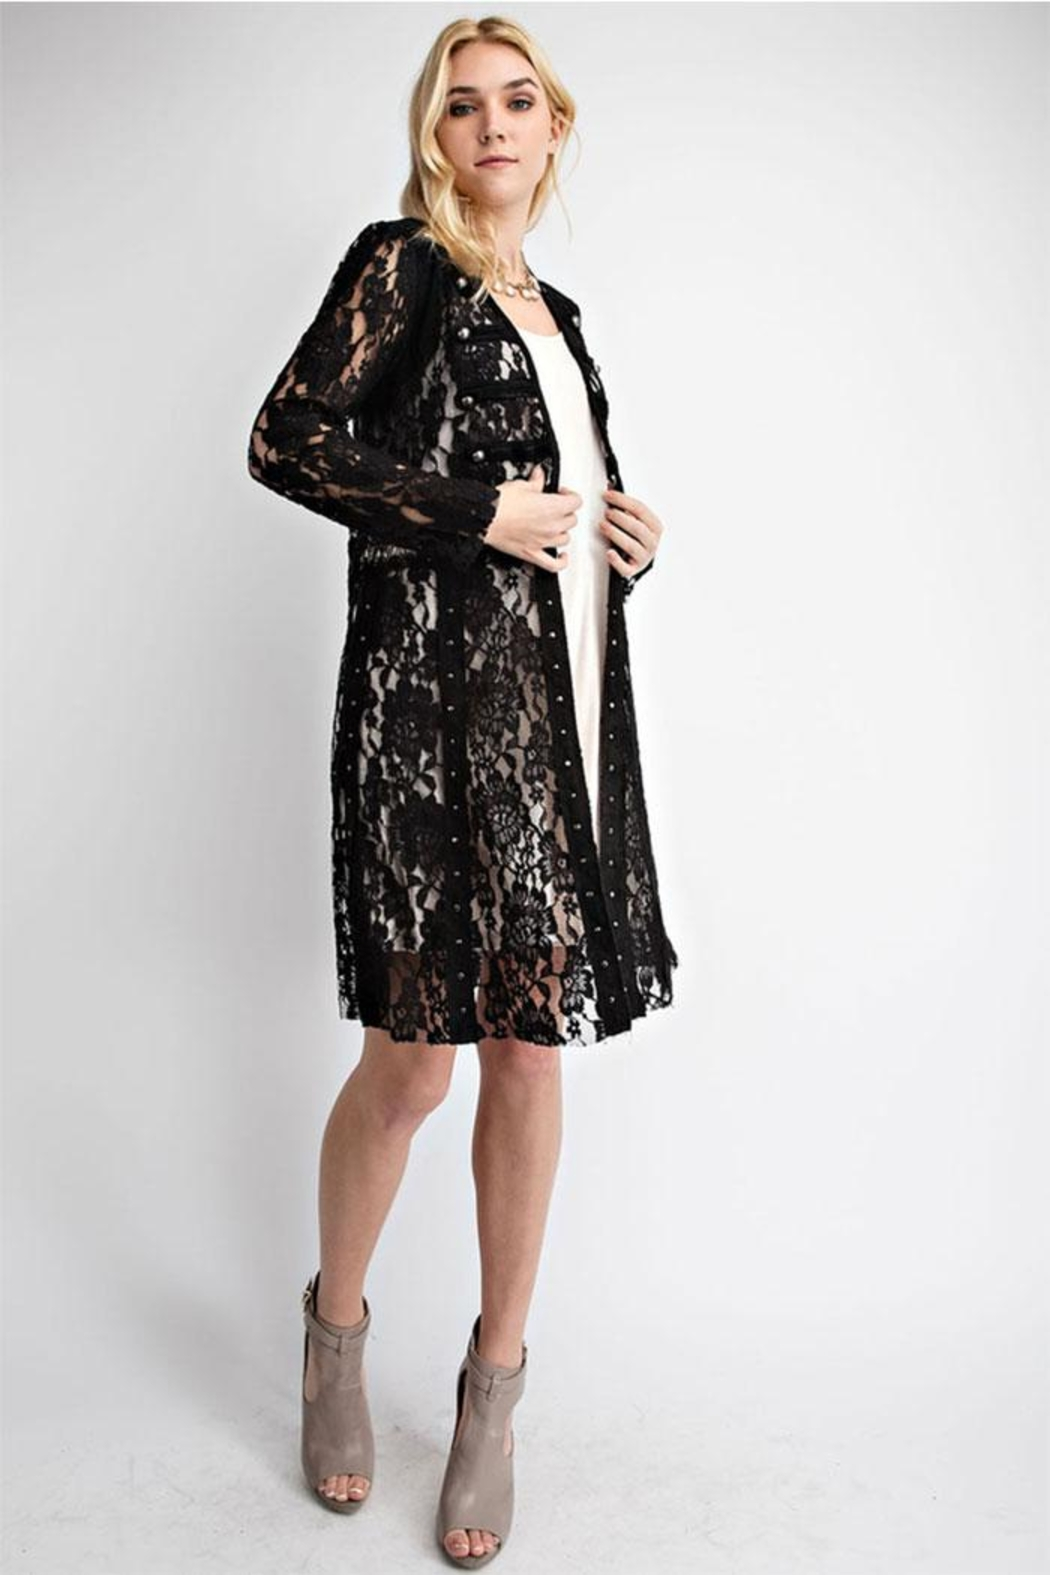 Vocal Apparel Lace With Suede Mix Jacket - Main Image